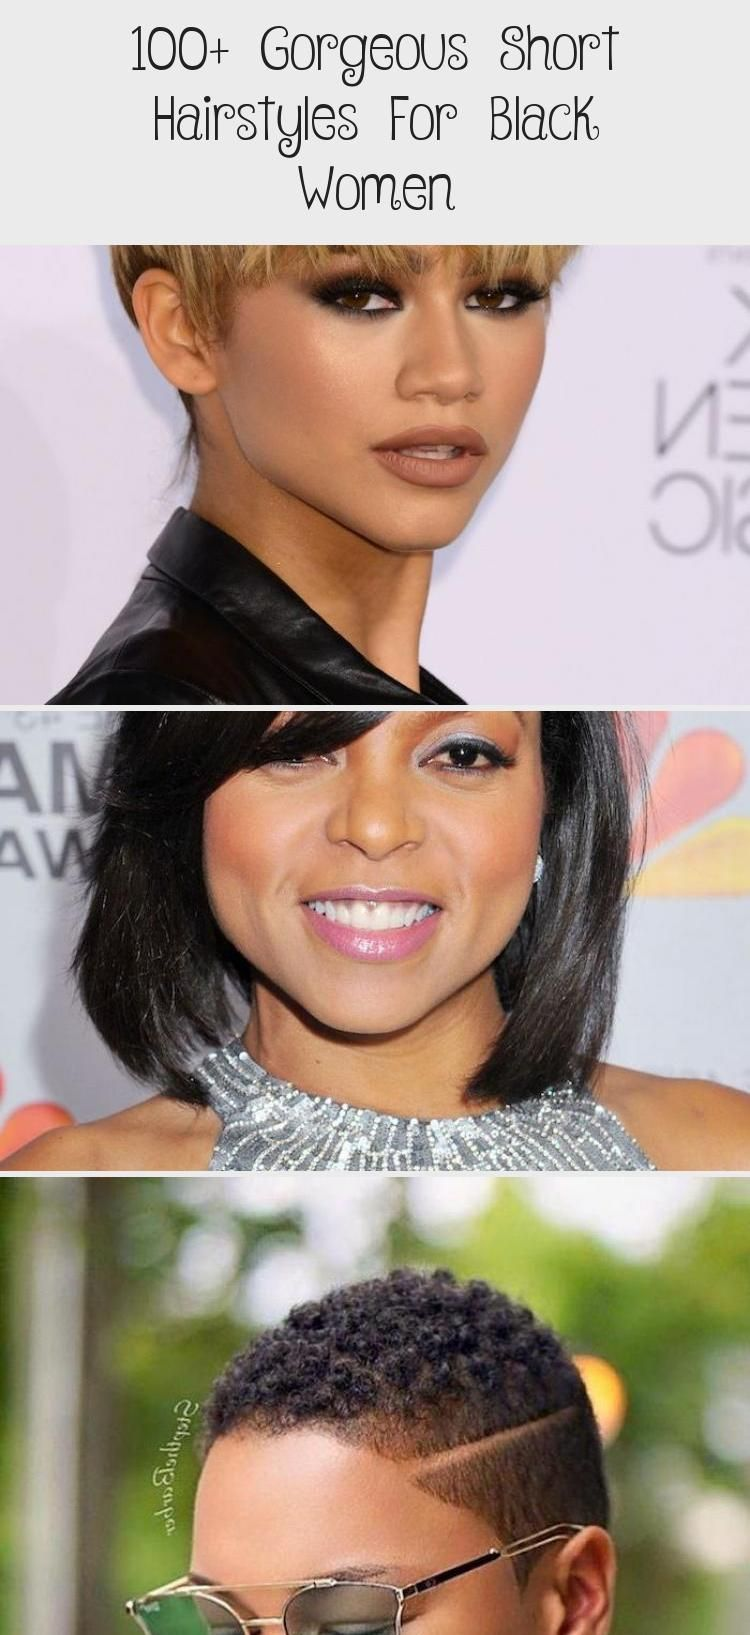 100+ Gorgeous Short Hairstyles For Black Women #bunshairstylesforblackwomen